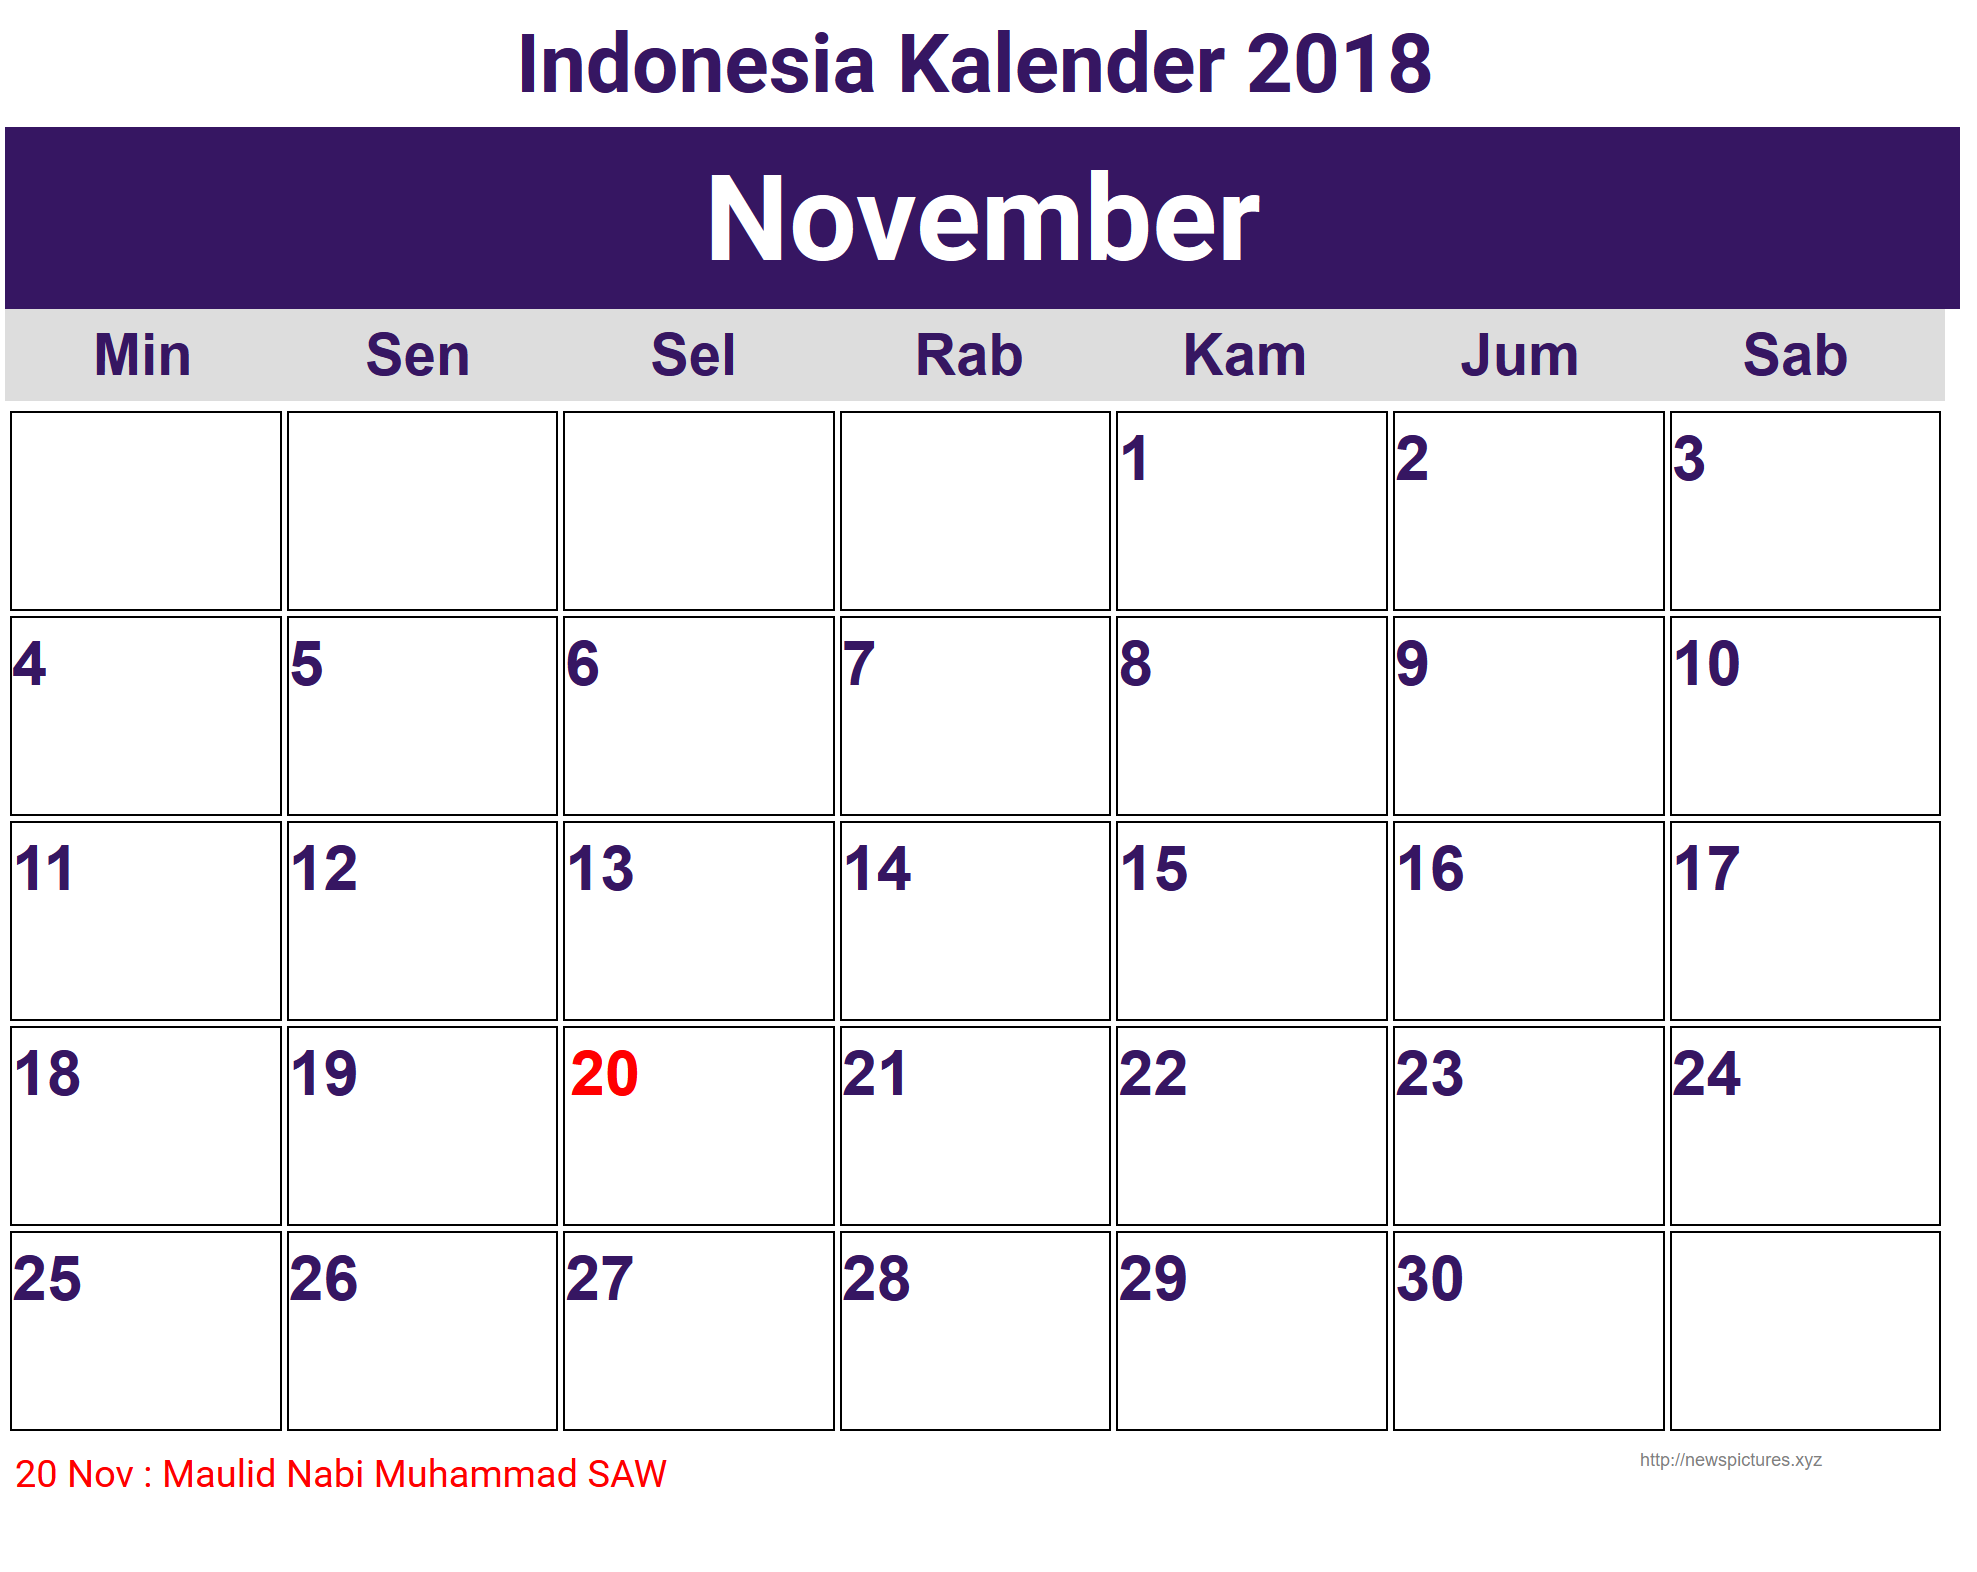 image for november indonesia kalender 2018 kalender. Black Bedroom Furniture Sets. Home Design Ideas